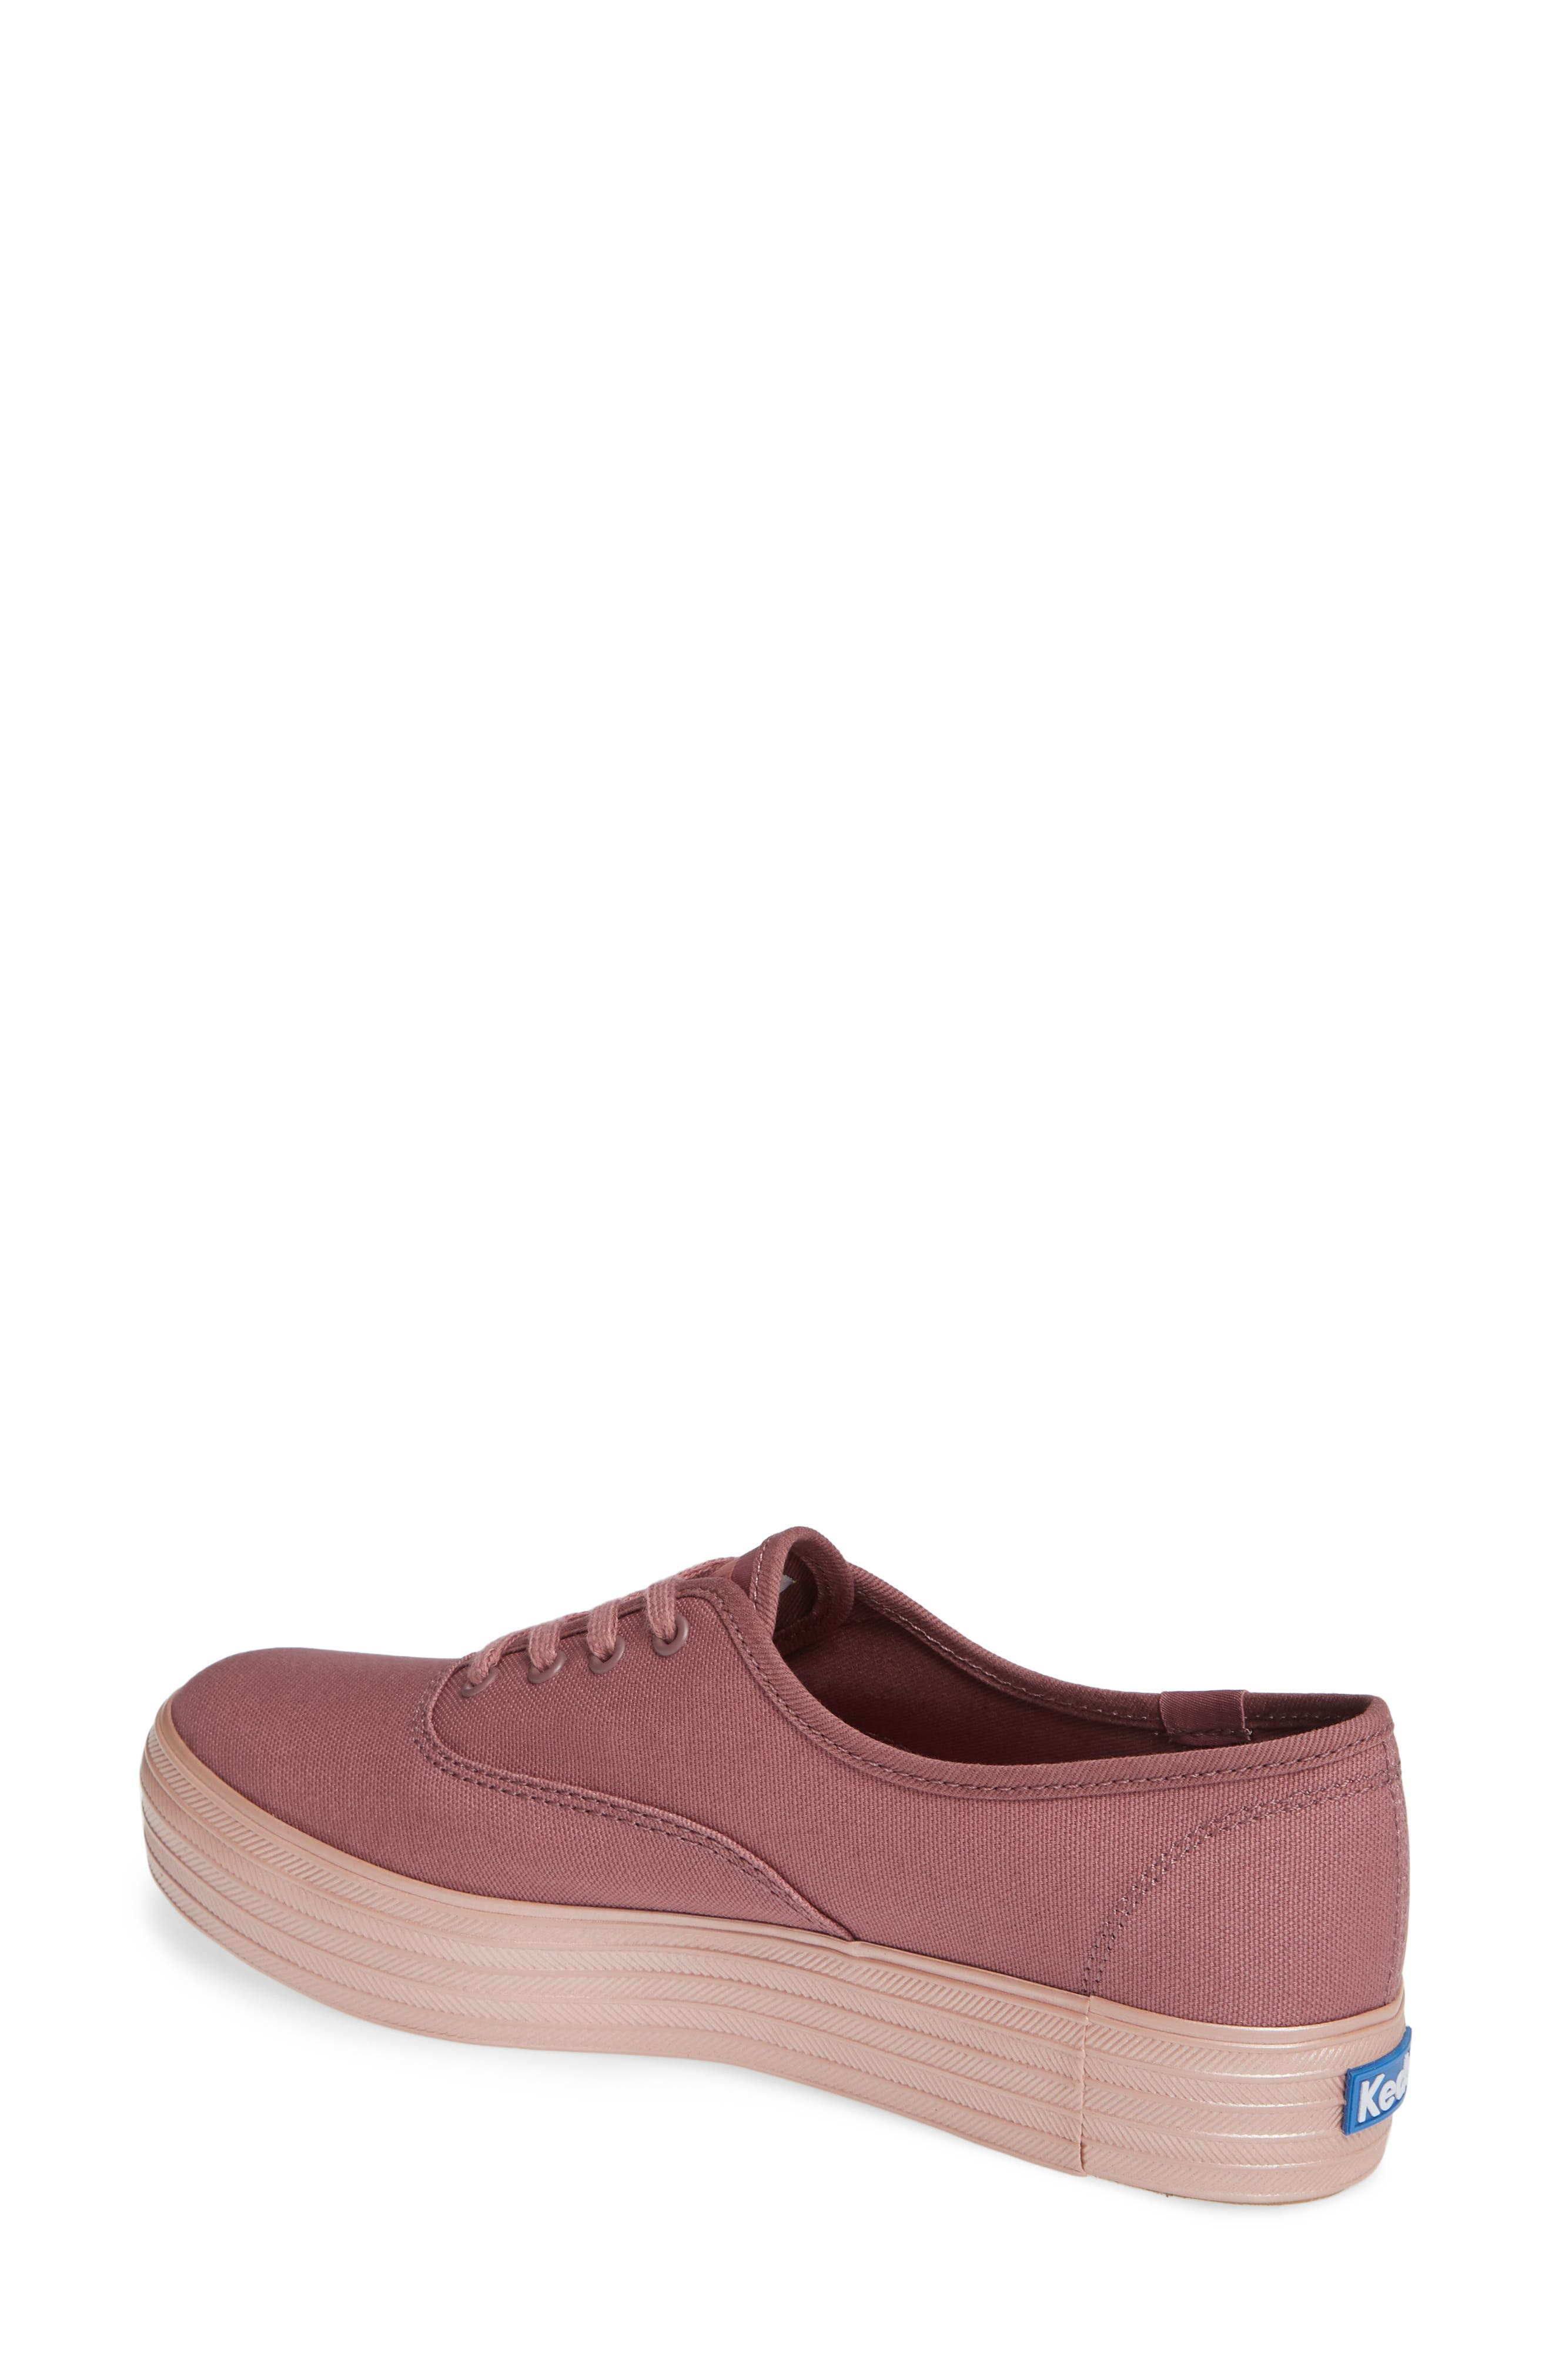 KEDS<SUP>®</SUP>, Triple Shimmer Sneaker, Alternate thumbnail 2, color, MAUVE